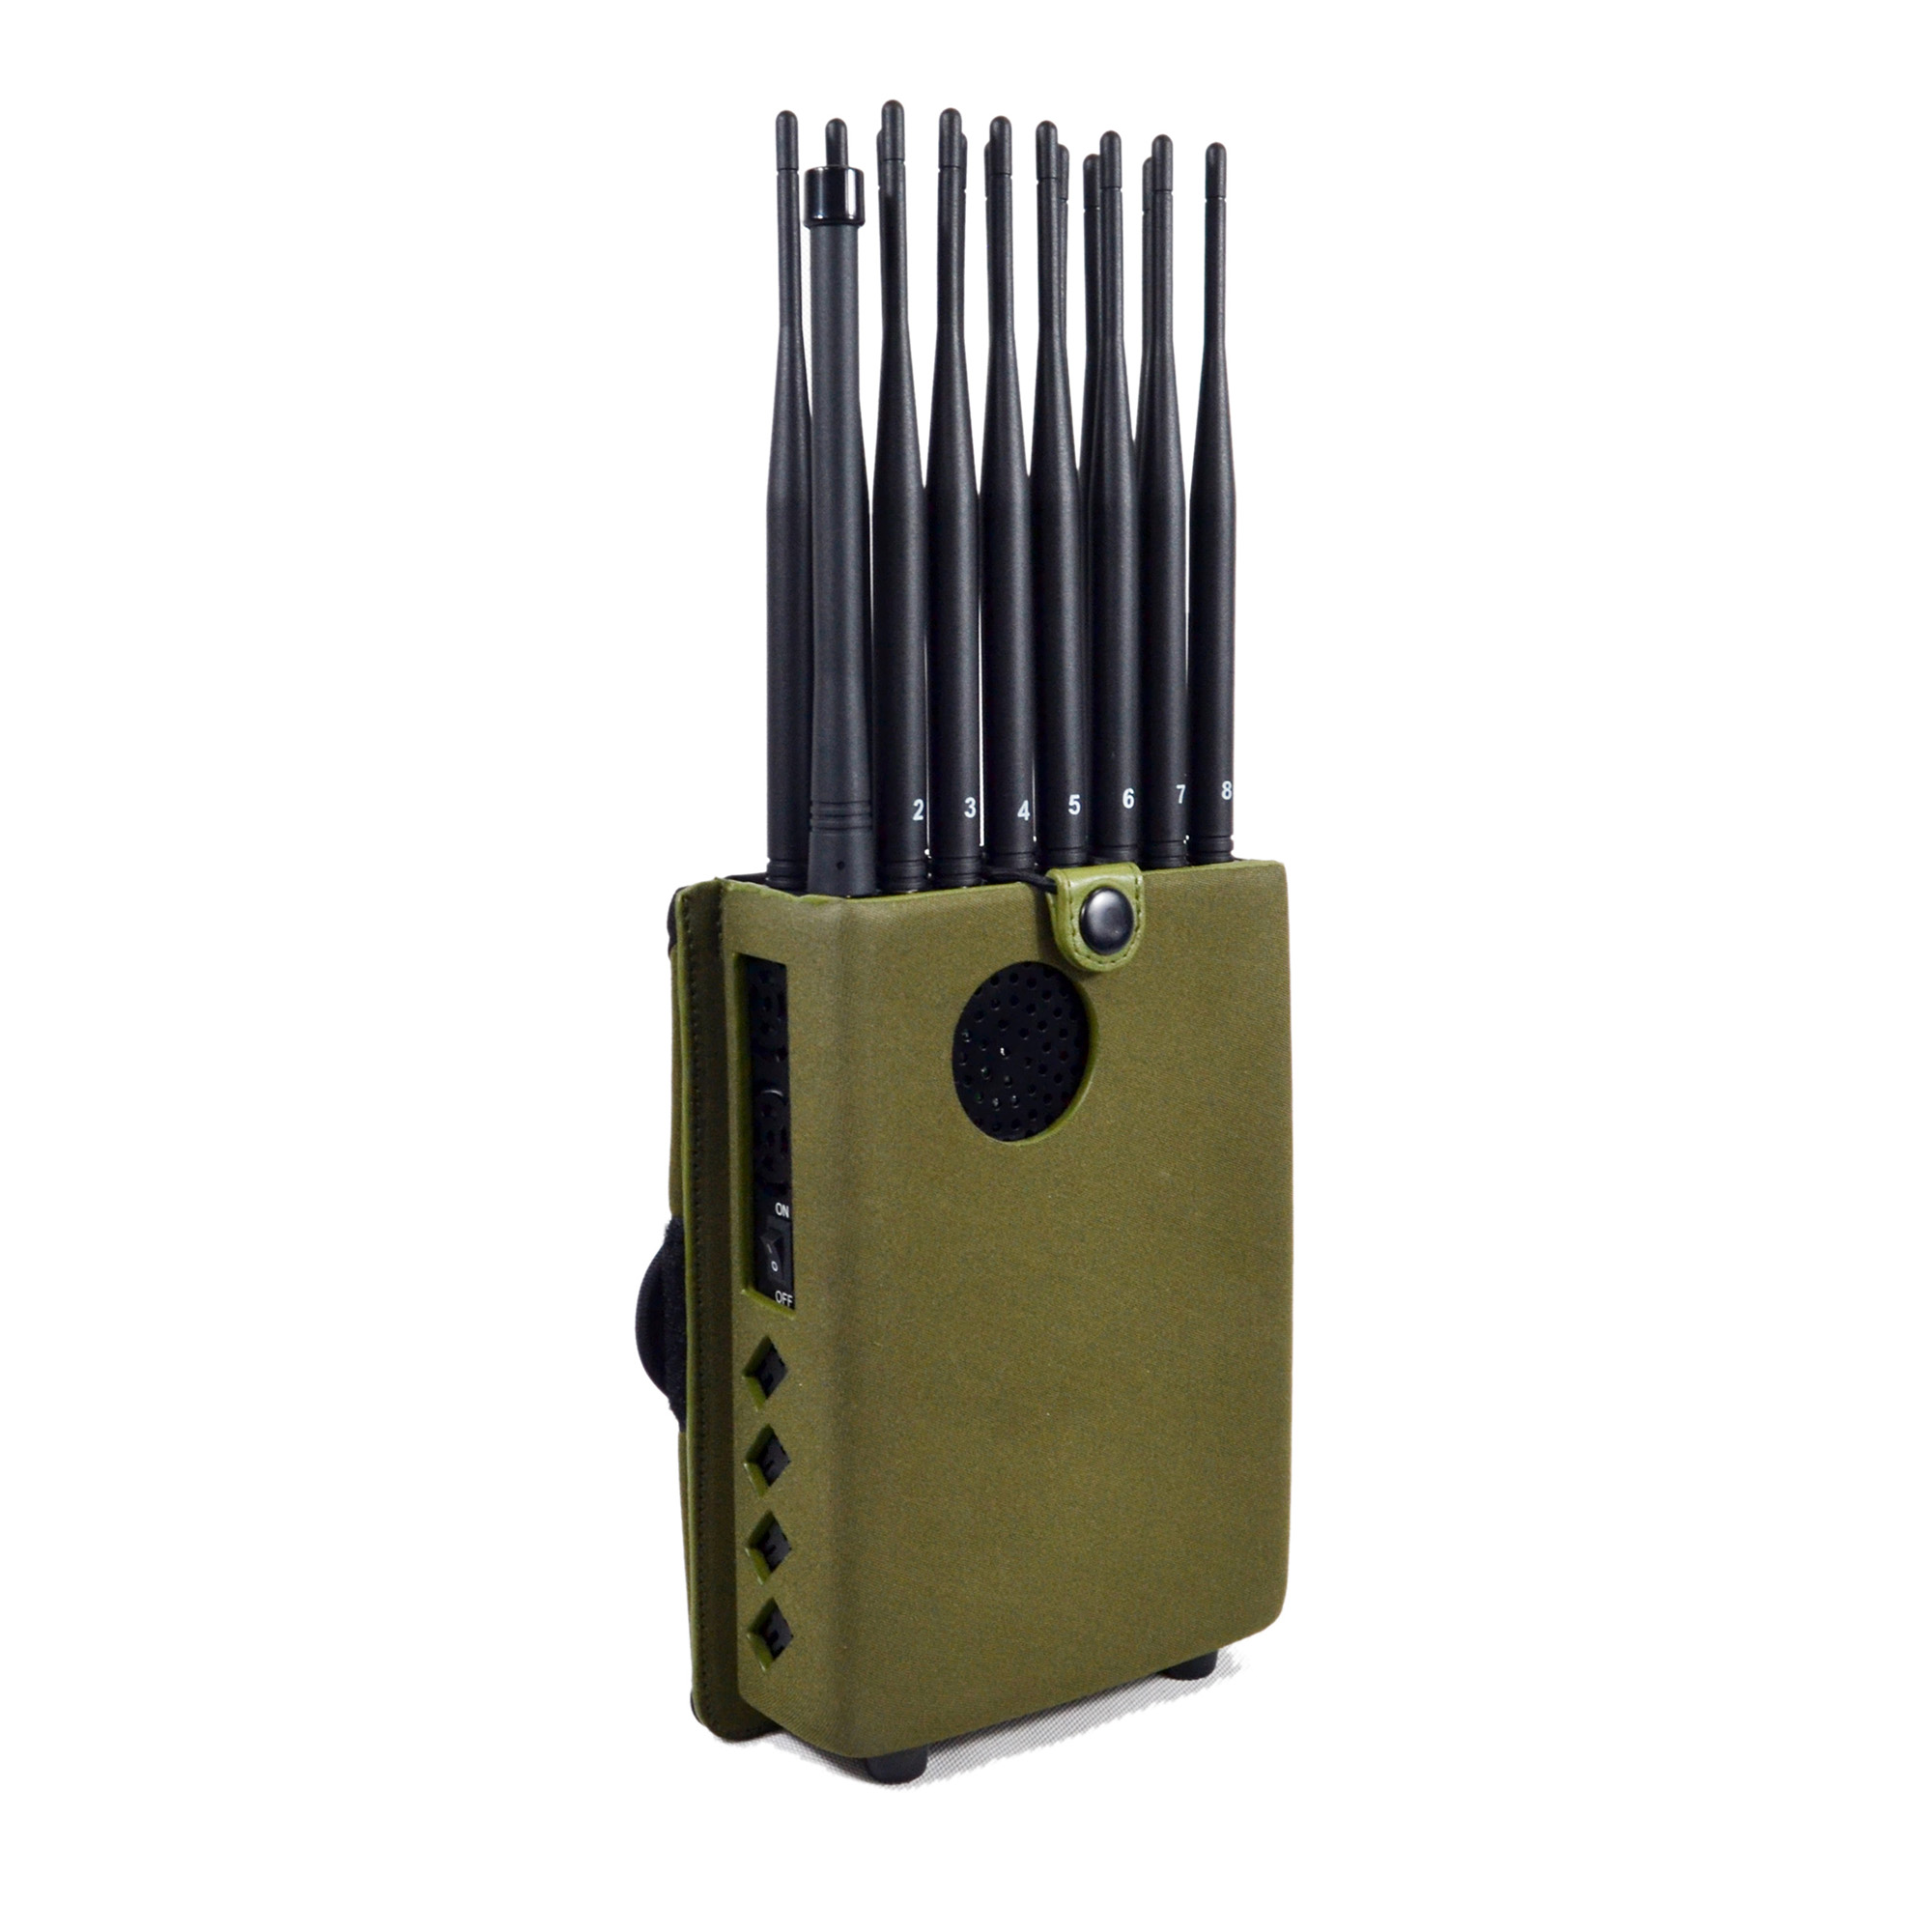 Jammer motorcycle products - Full Bands Jammer Adjustable 16 Antennas Powerful 3G 4G Phone Blocker &WiFi UHF VHF GPS L1/L2/L5 Lojack Remote Control All Bands